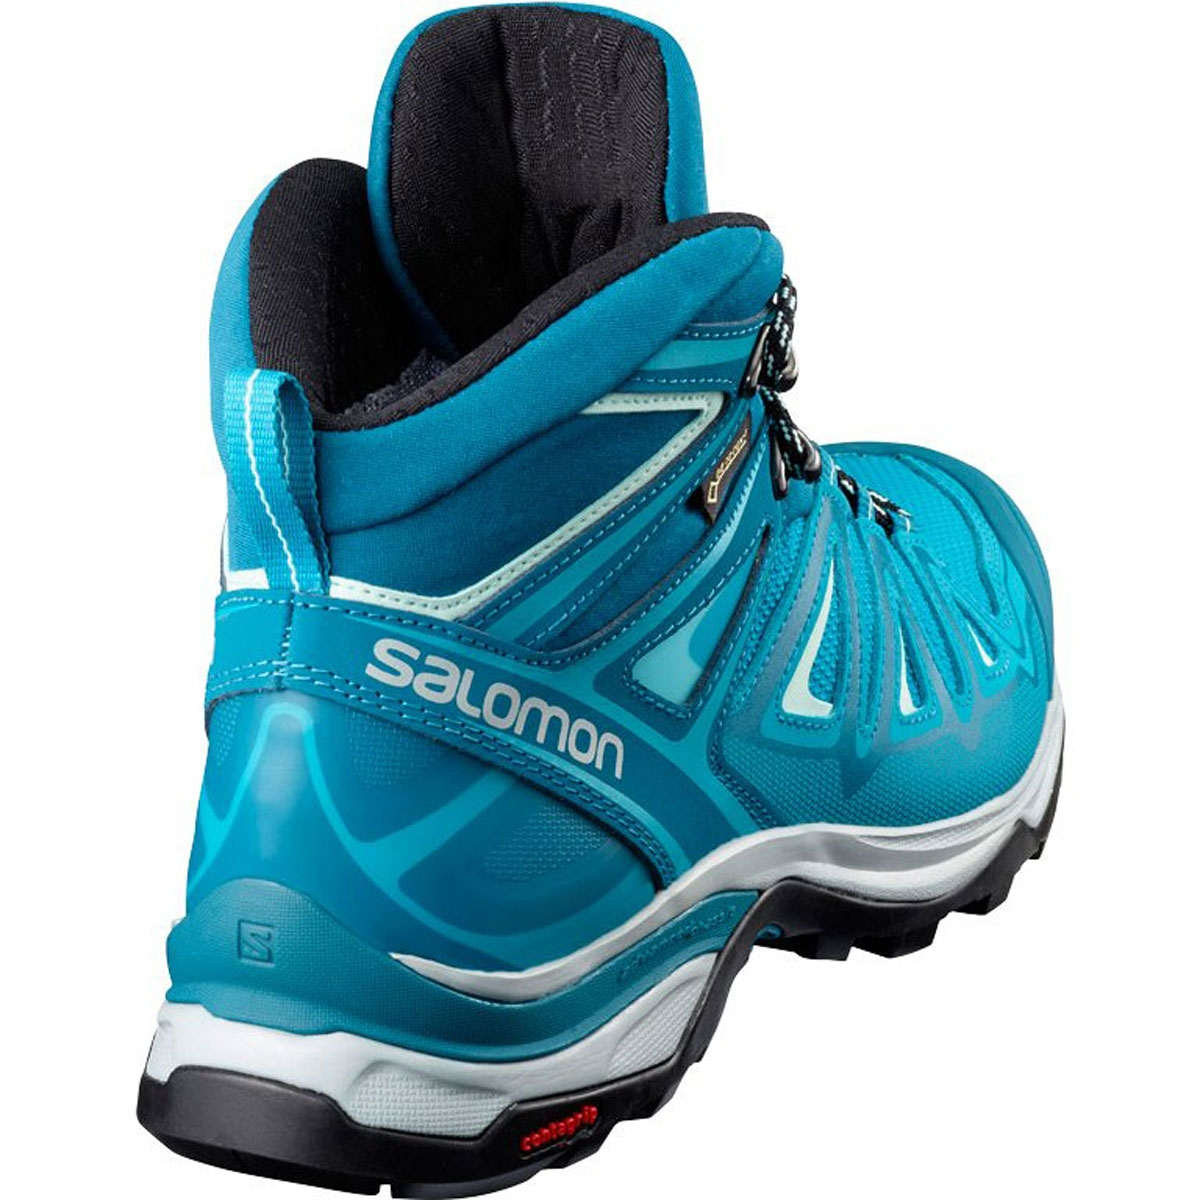 new styles 45882 ace05 Salomon X Ultra Mid 3 GTX Walking Boots (Women's) - Deep Lagoon/Enamel  Blue/Eggshell Blue